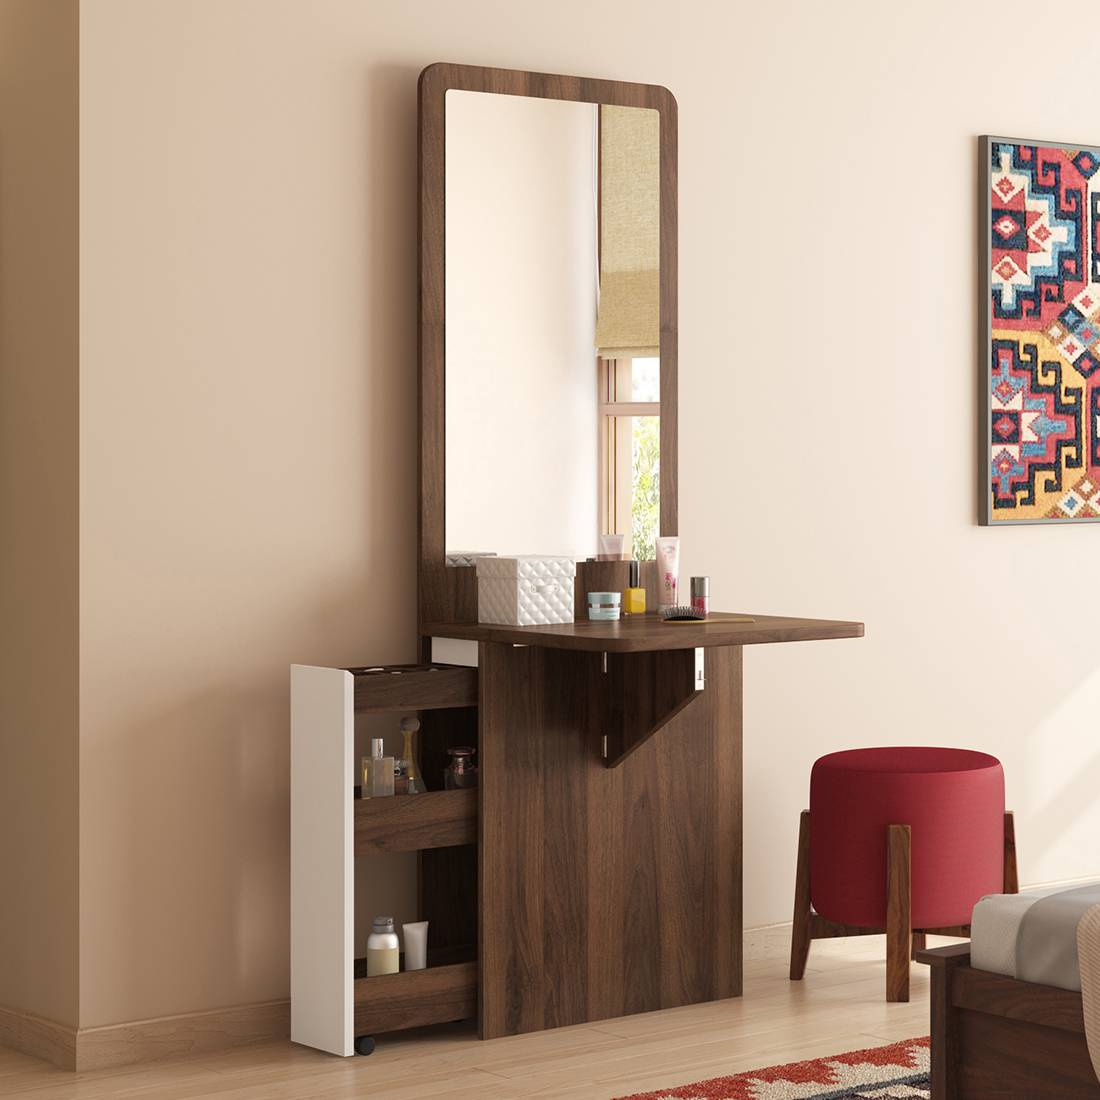 Dressing Table: Buy Dressing Table Online at Best Prices - Urban